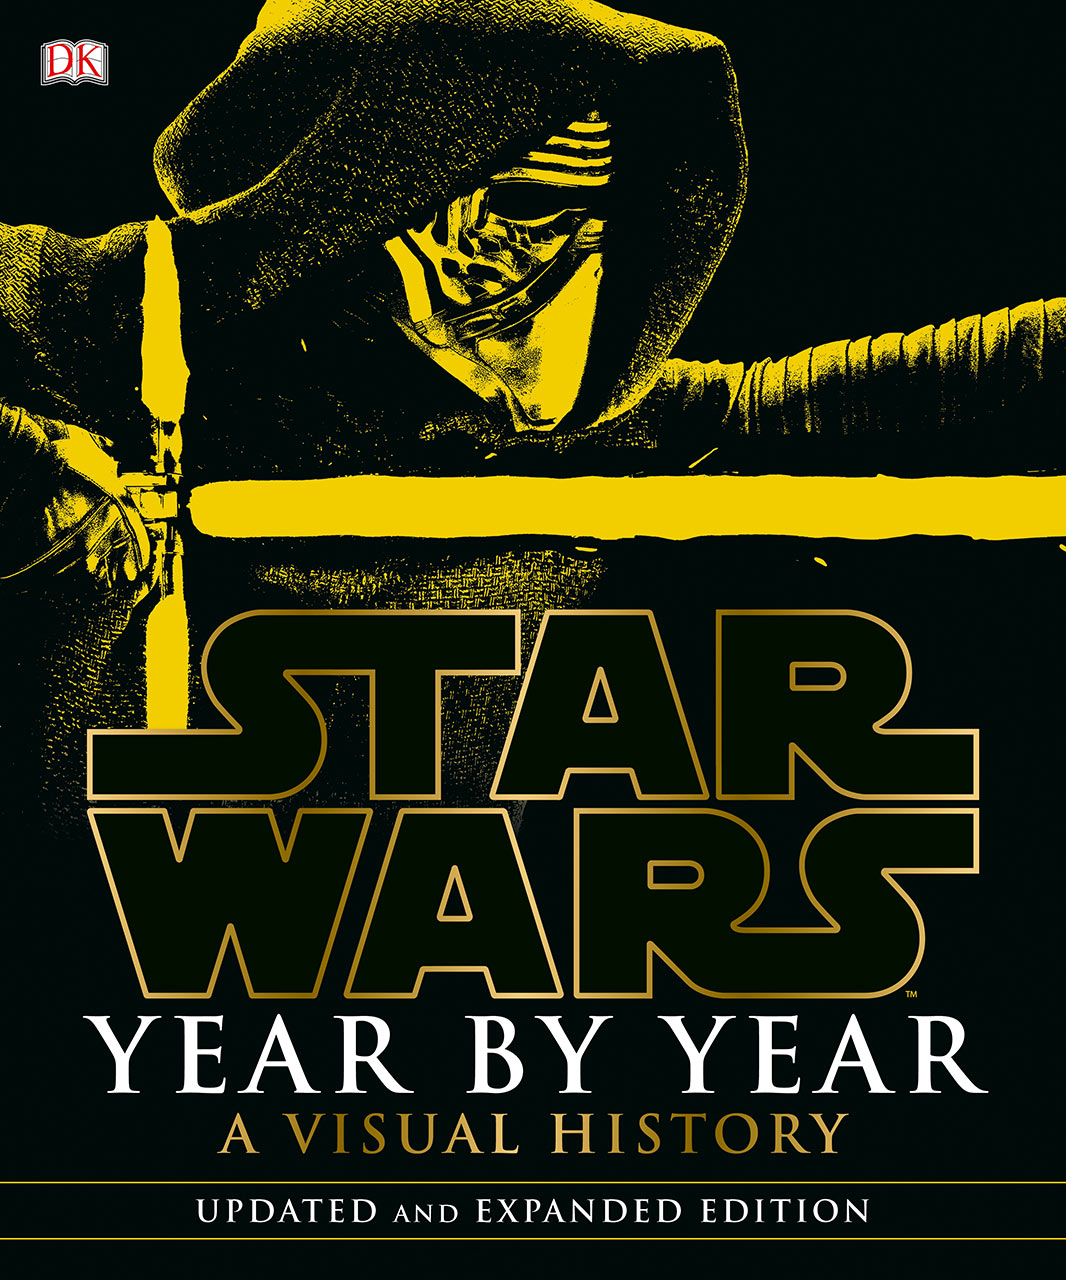 Star Wars Year By Year: A Visual History, Updated and Expanded Edition